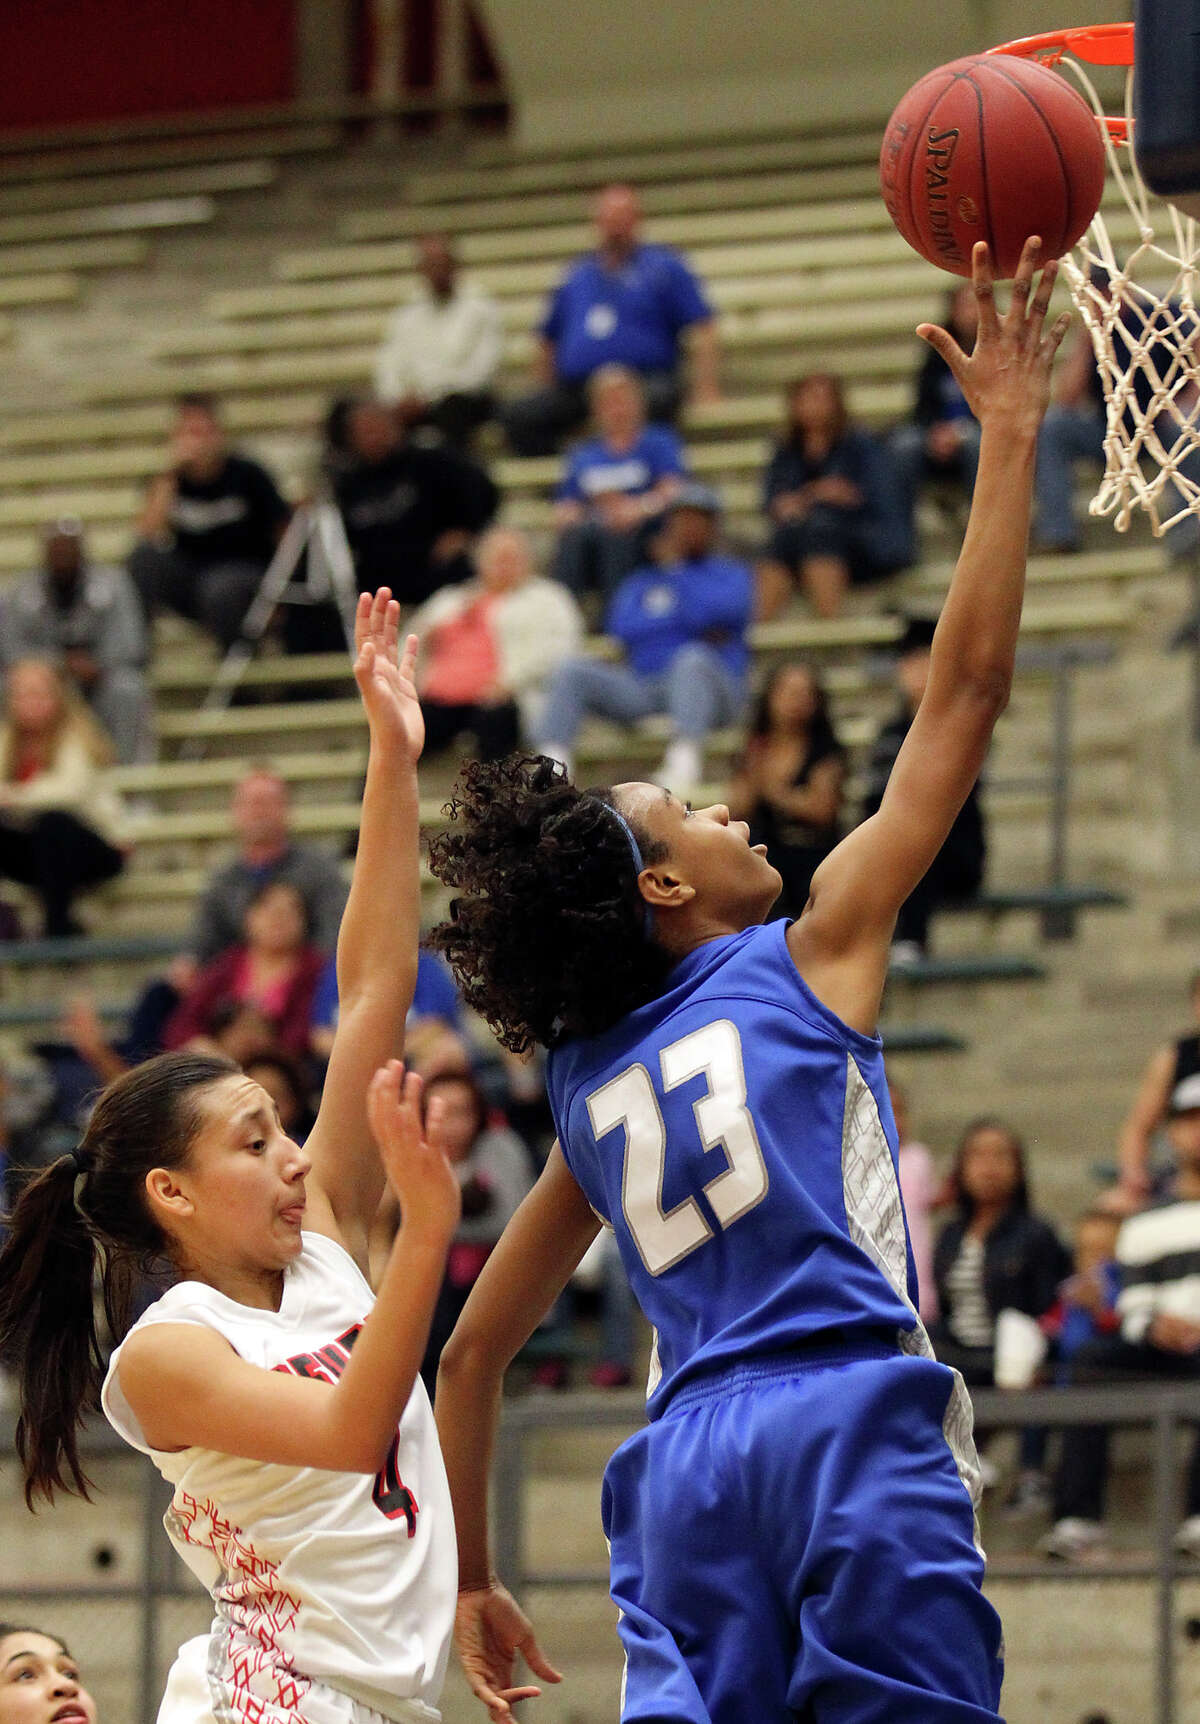 Jays' Ashia McLaurin (23) goes for a layup against Stevens' Julia Rendon (04) during girls basketball at Paul Taylor Fieldhouse on Saturday, Jan. 19, 2013. Jay defeated Stevens in overtime, 51-47.